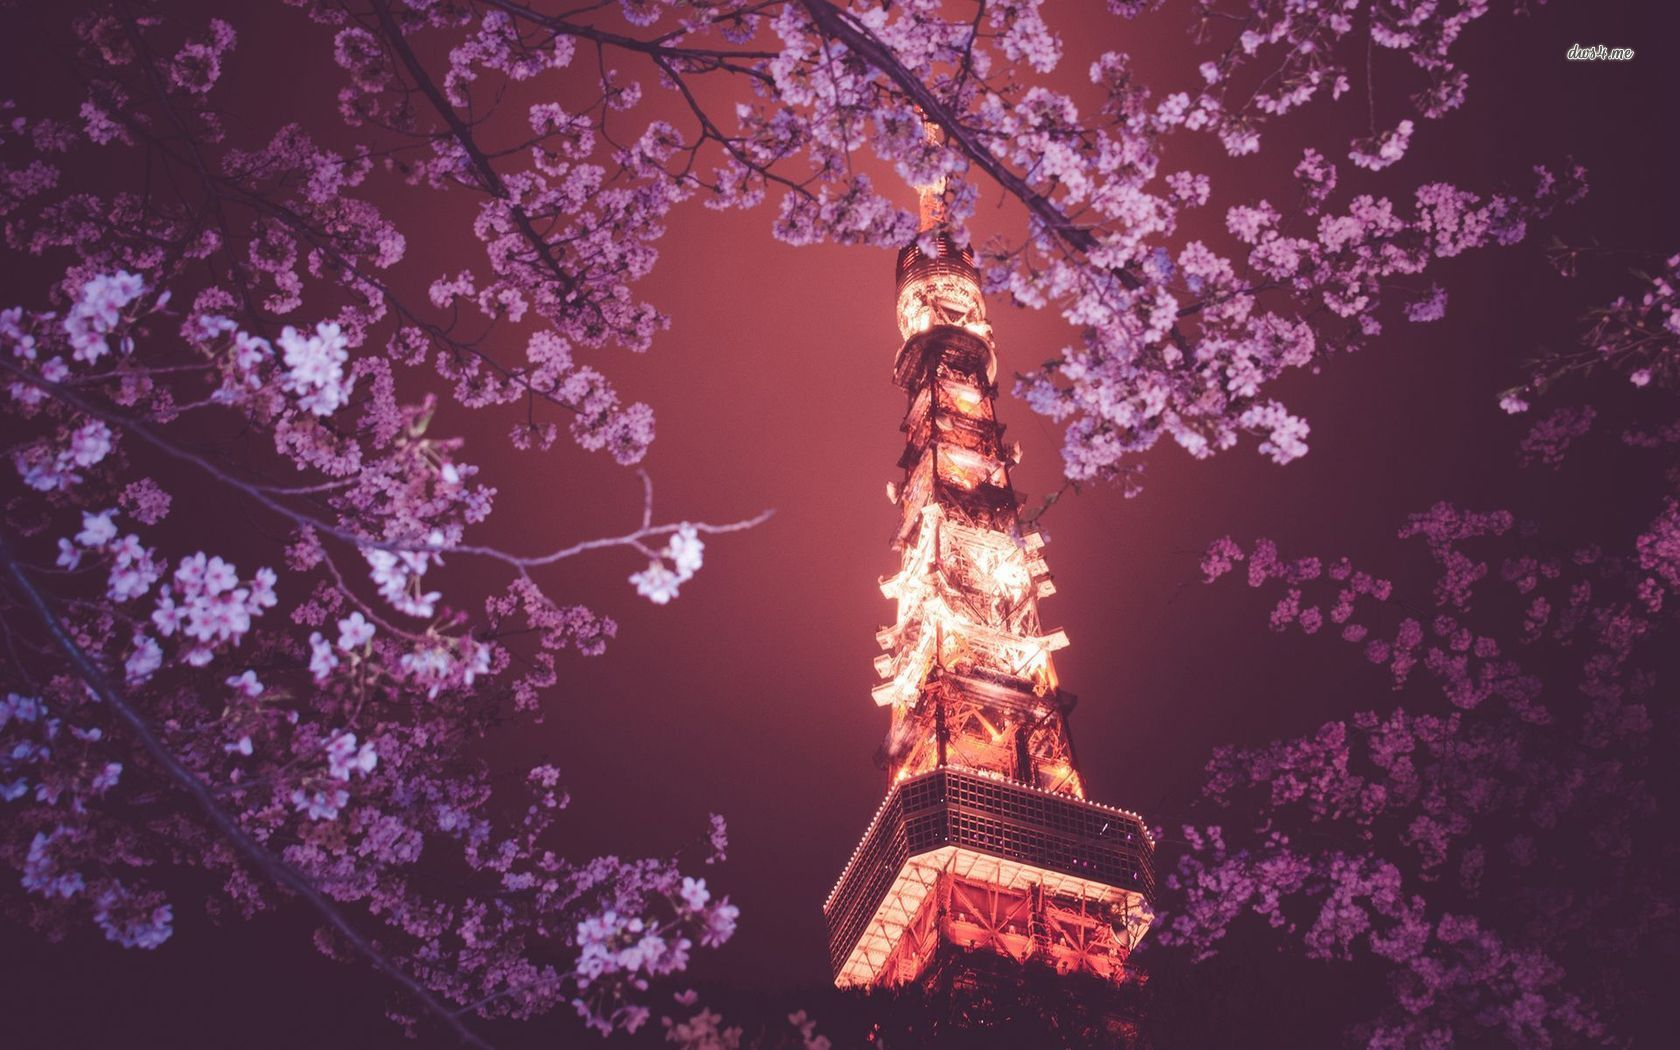 Pink Cherry Blossom Photo Of Pink Cherry Blossom Tree Flowers Cityscape Tokyo Cherry Blos Cherry Blossom Wallpaper Anime Cherry Blossom Scenery Wallpaper